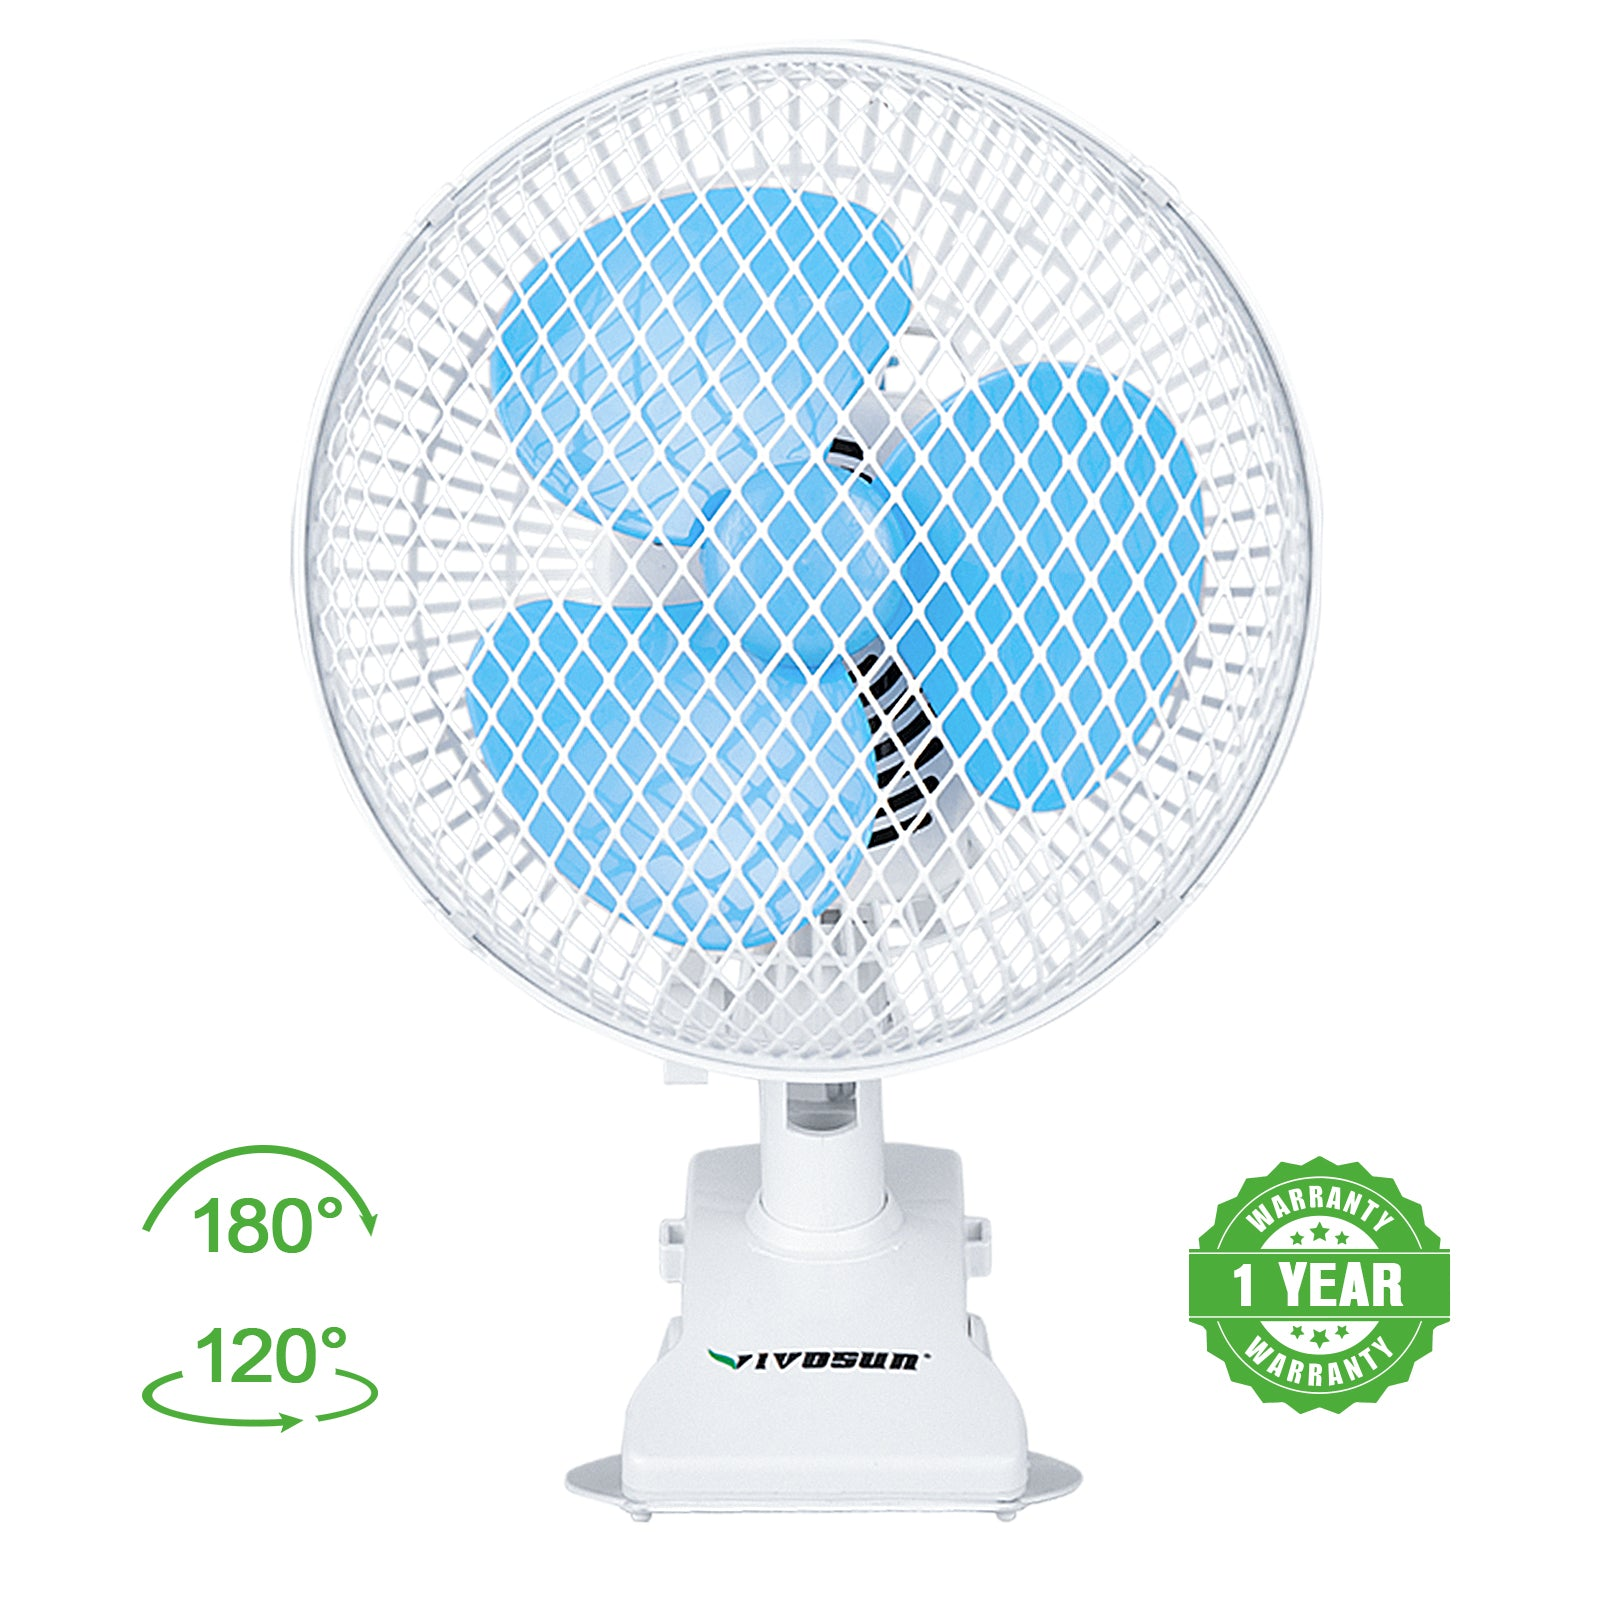 VIVOSUN Clip-On Grow Tent Desk Fan (Only Available in Canada) - VIVOSUN